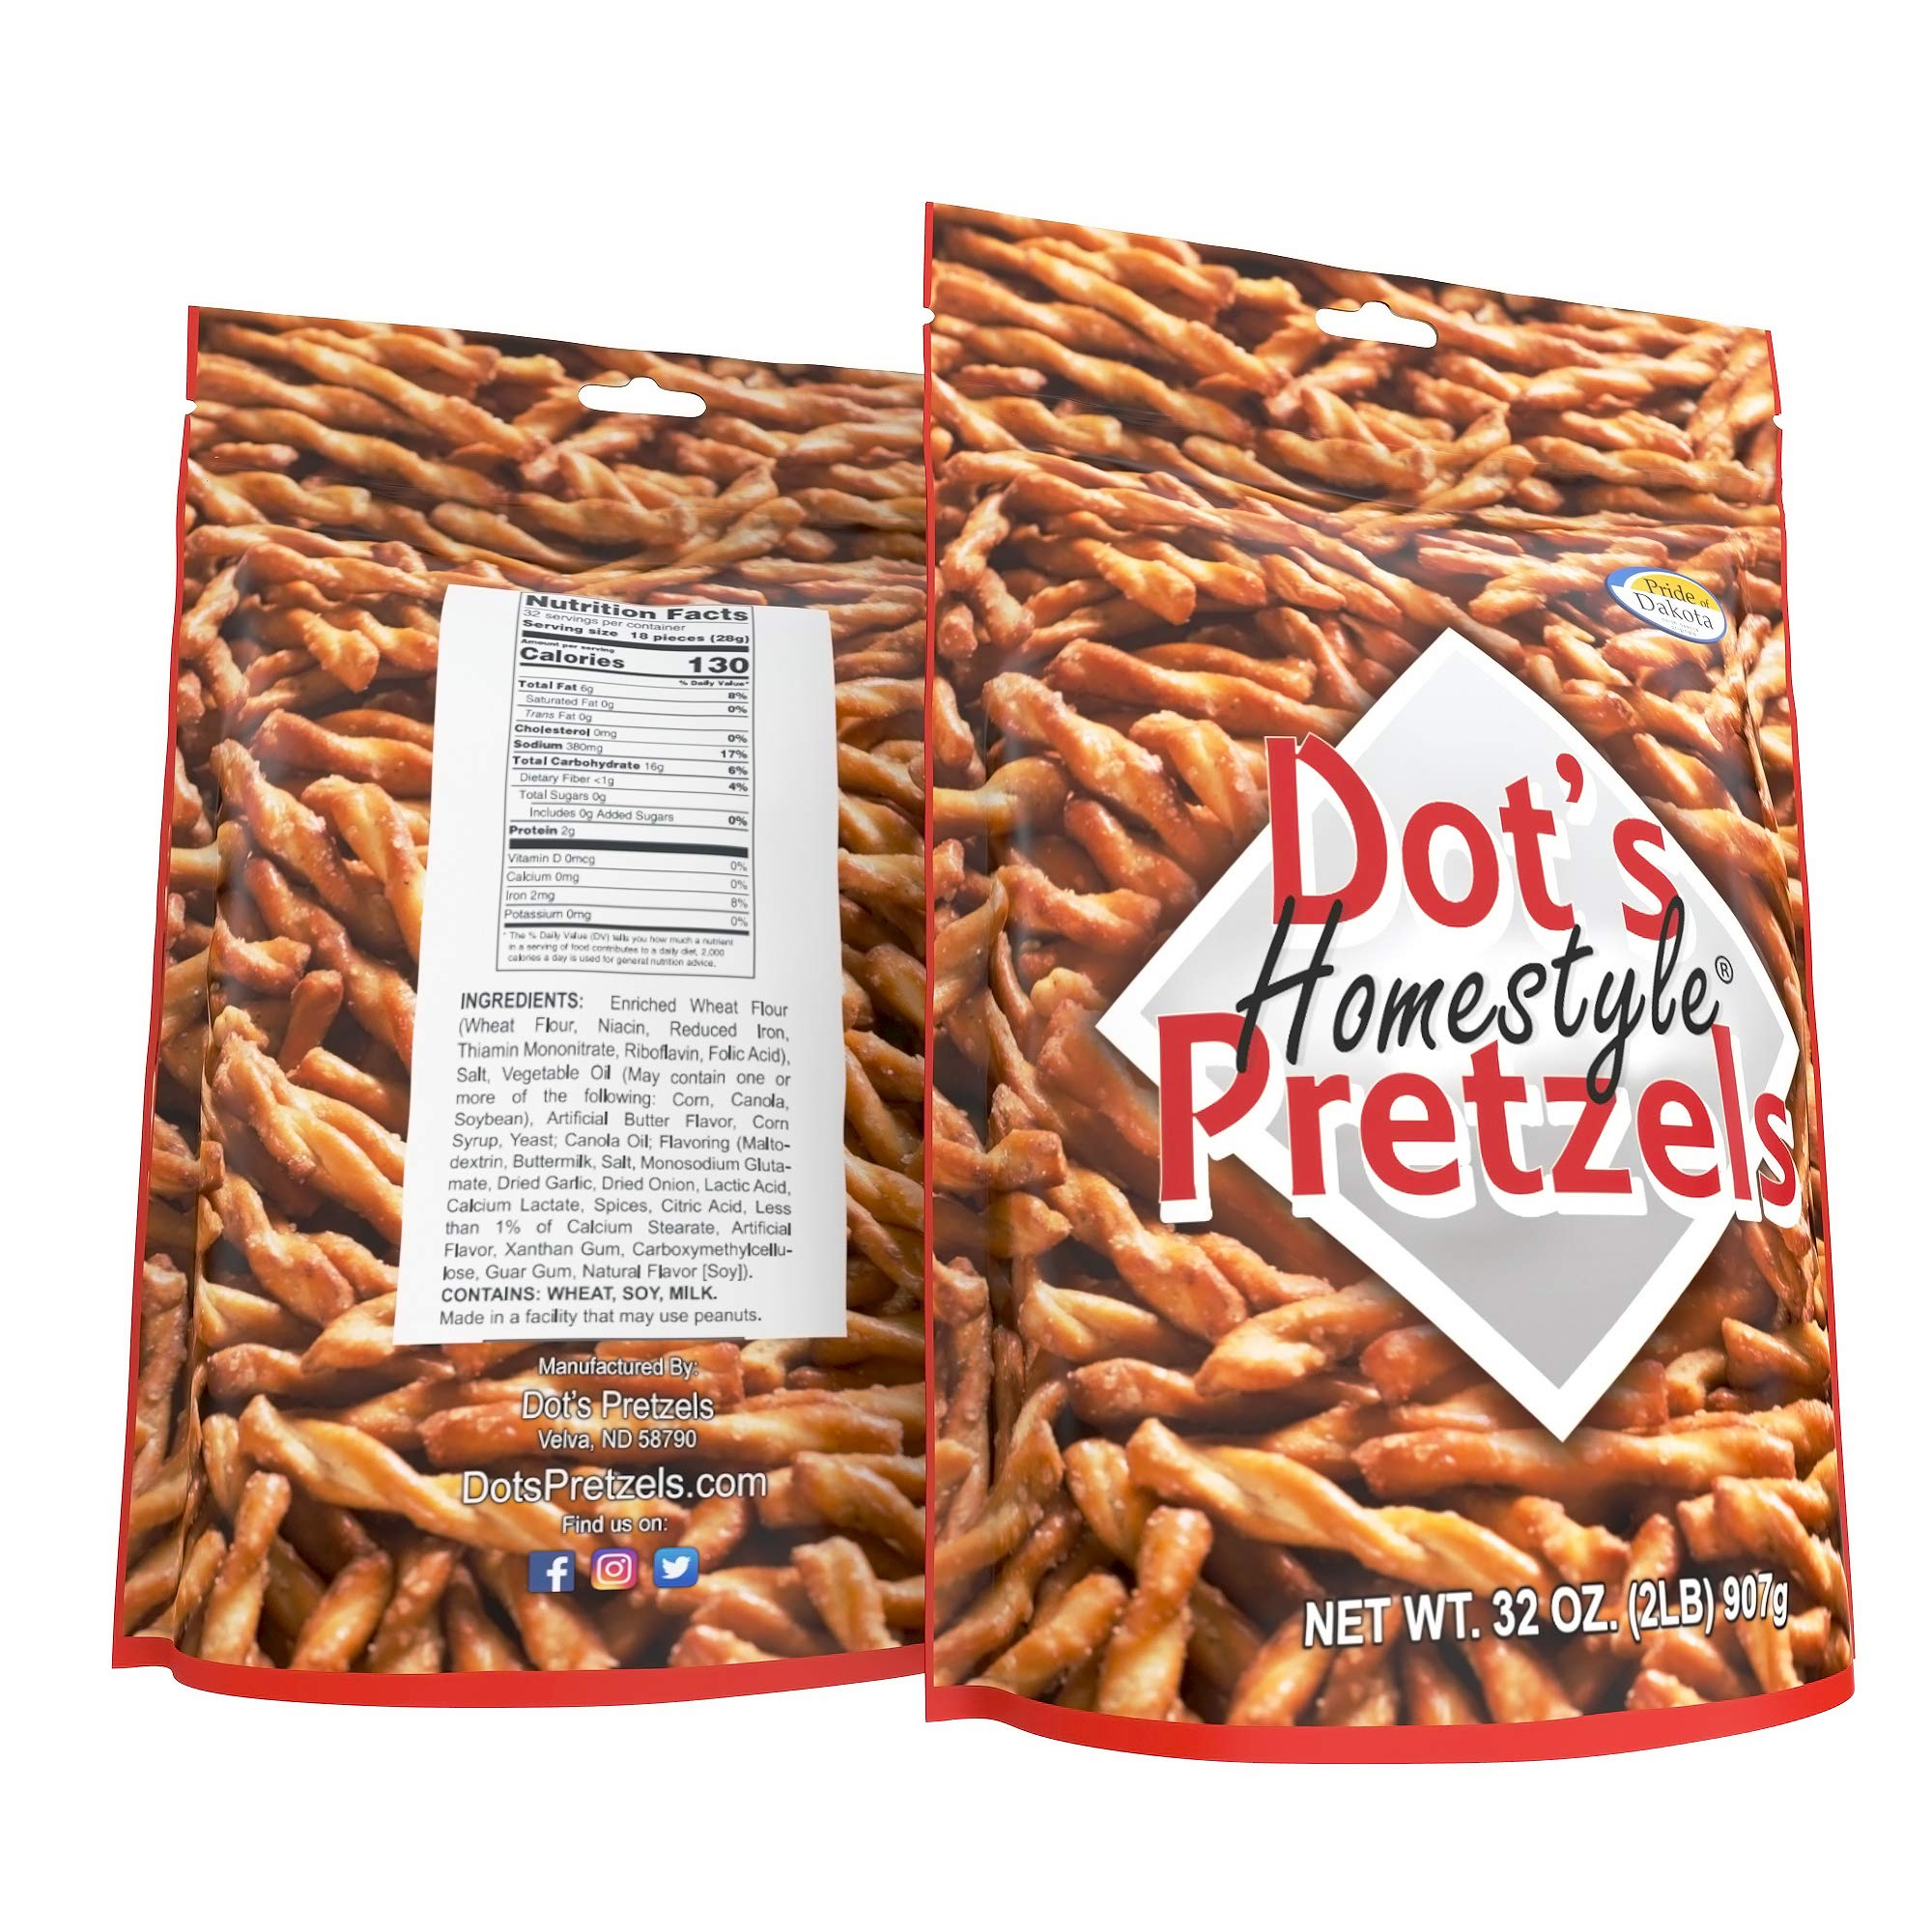 Dot's Homestyle Pretzels 2 lb. Bag (Single) 32 oz. Seasoned Pretzel Snack Sticks (Packaging May Vary) by Dot's Homestyle Pretzels (Image #7)